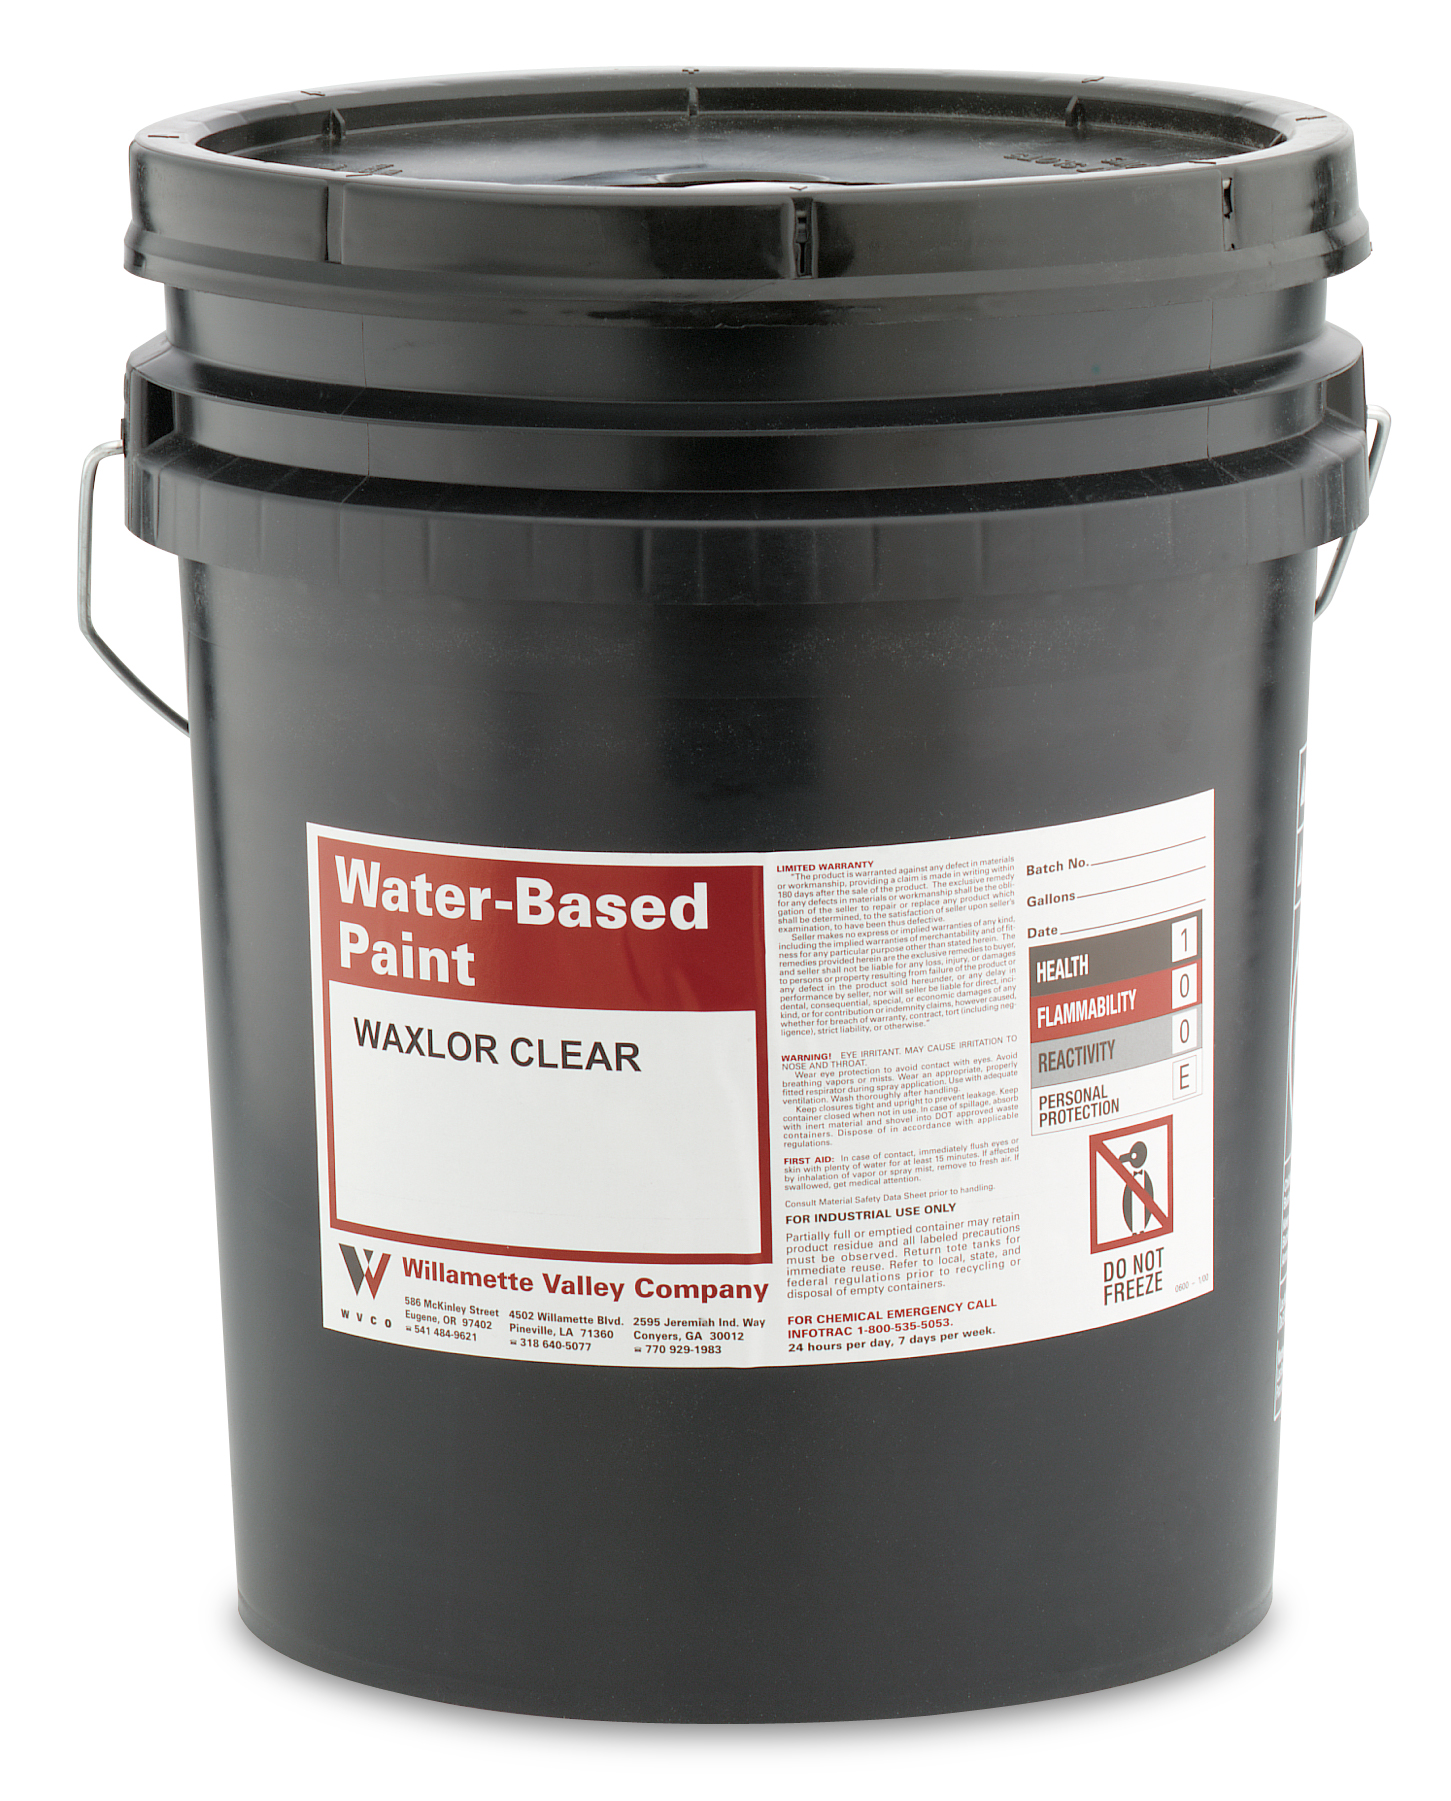 Waxlor End Sealant